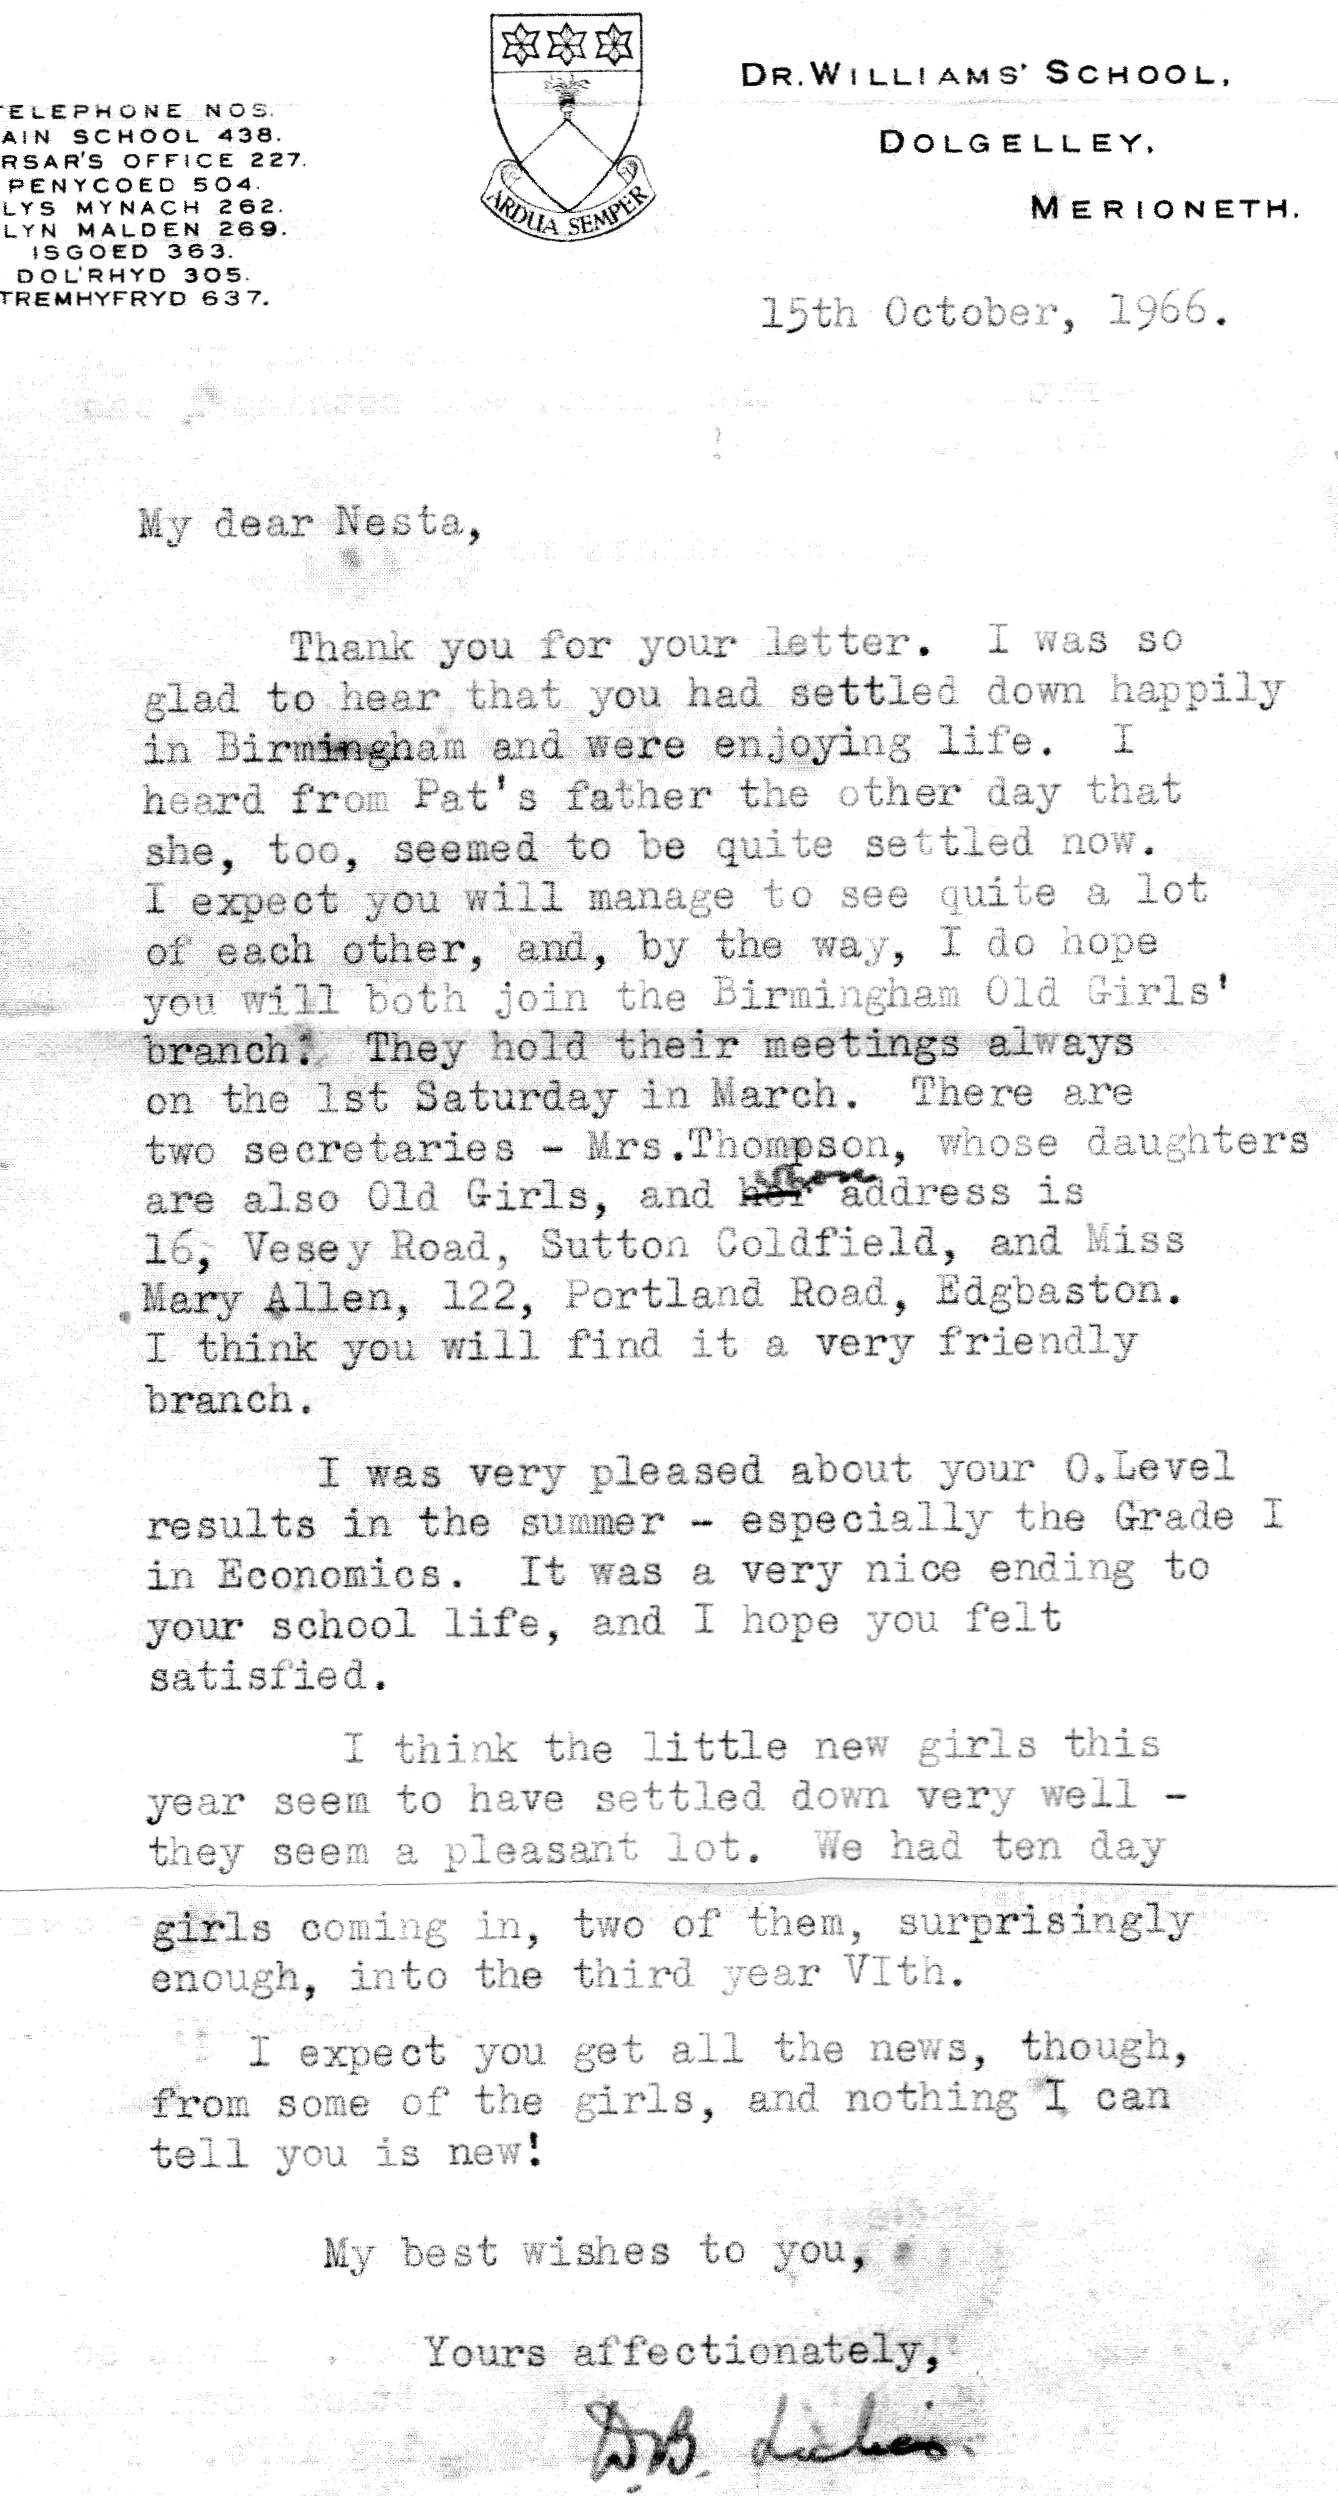 1966 Letter from Miss Lickes in response to Nesta Roberts's